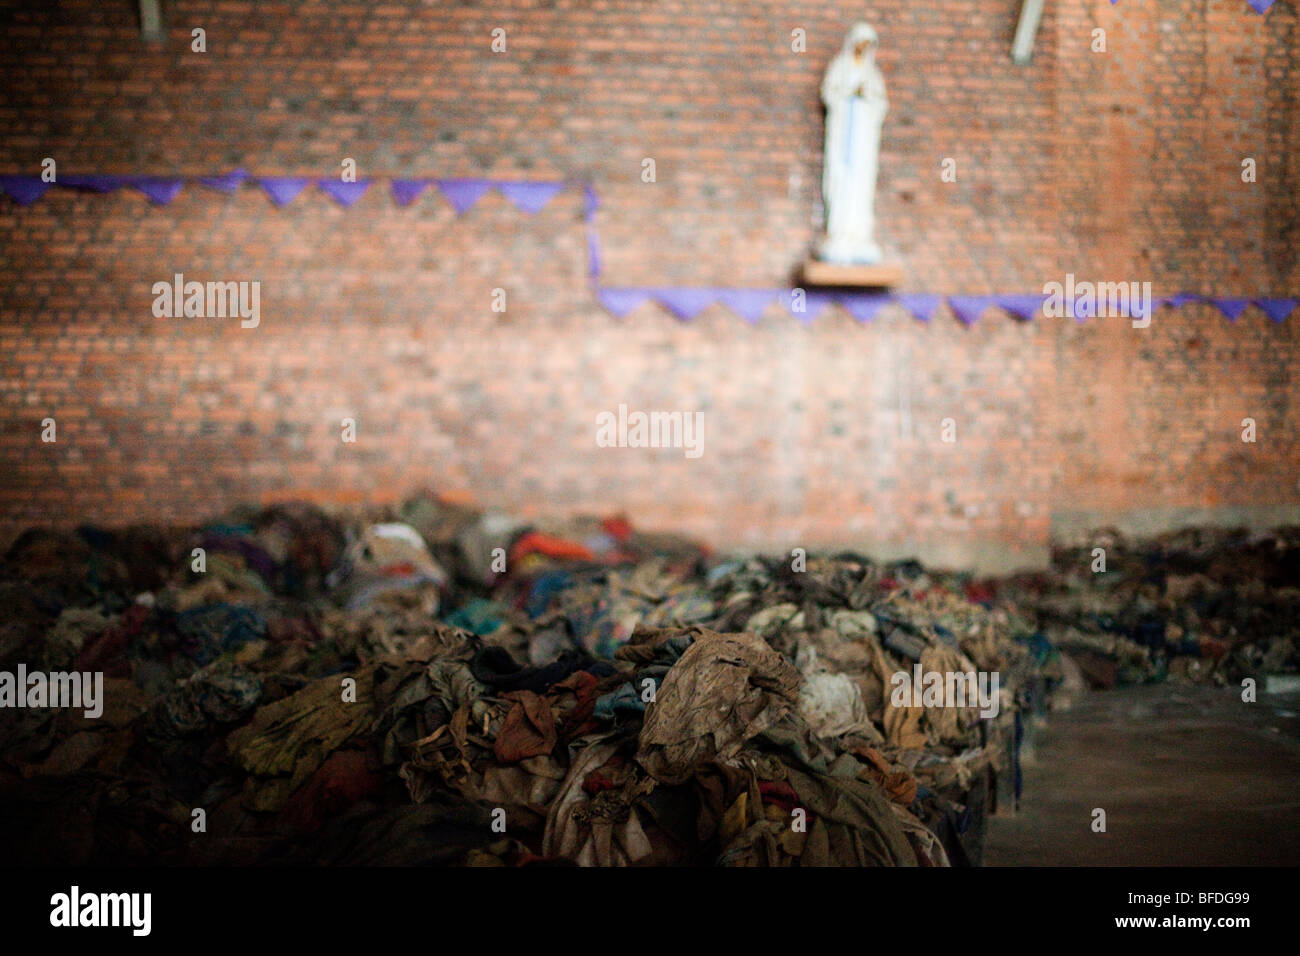 Clothes are piled high where thousands lost their lives at a church in rural Rwanda during the 1994 genocide. - Stock Image